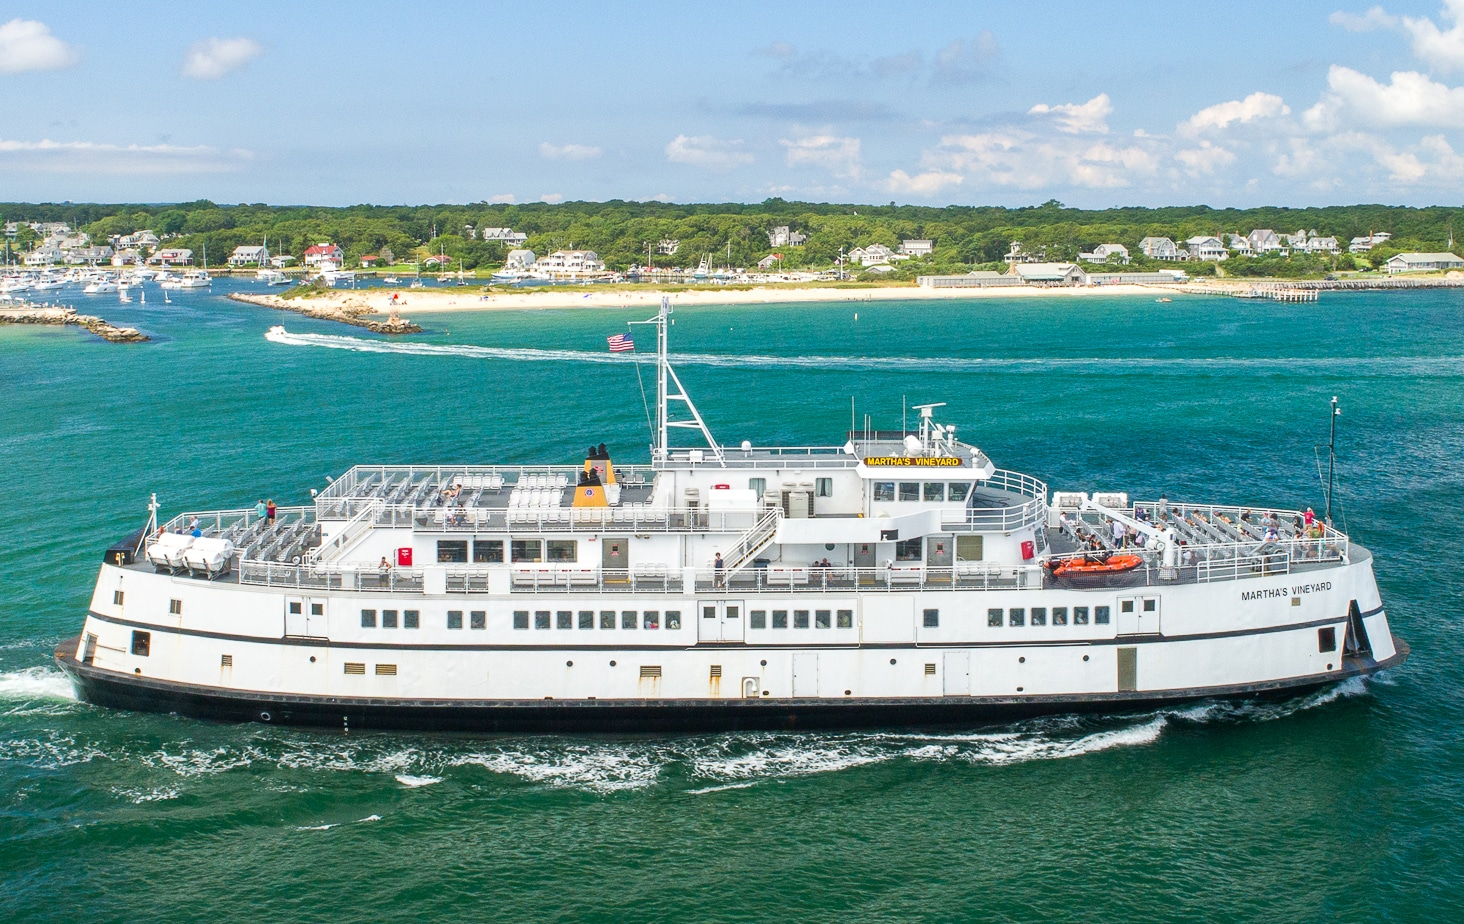 travel to Martha's Vineyard via Ferry